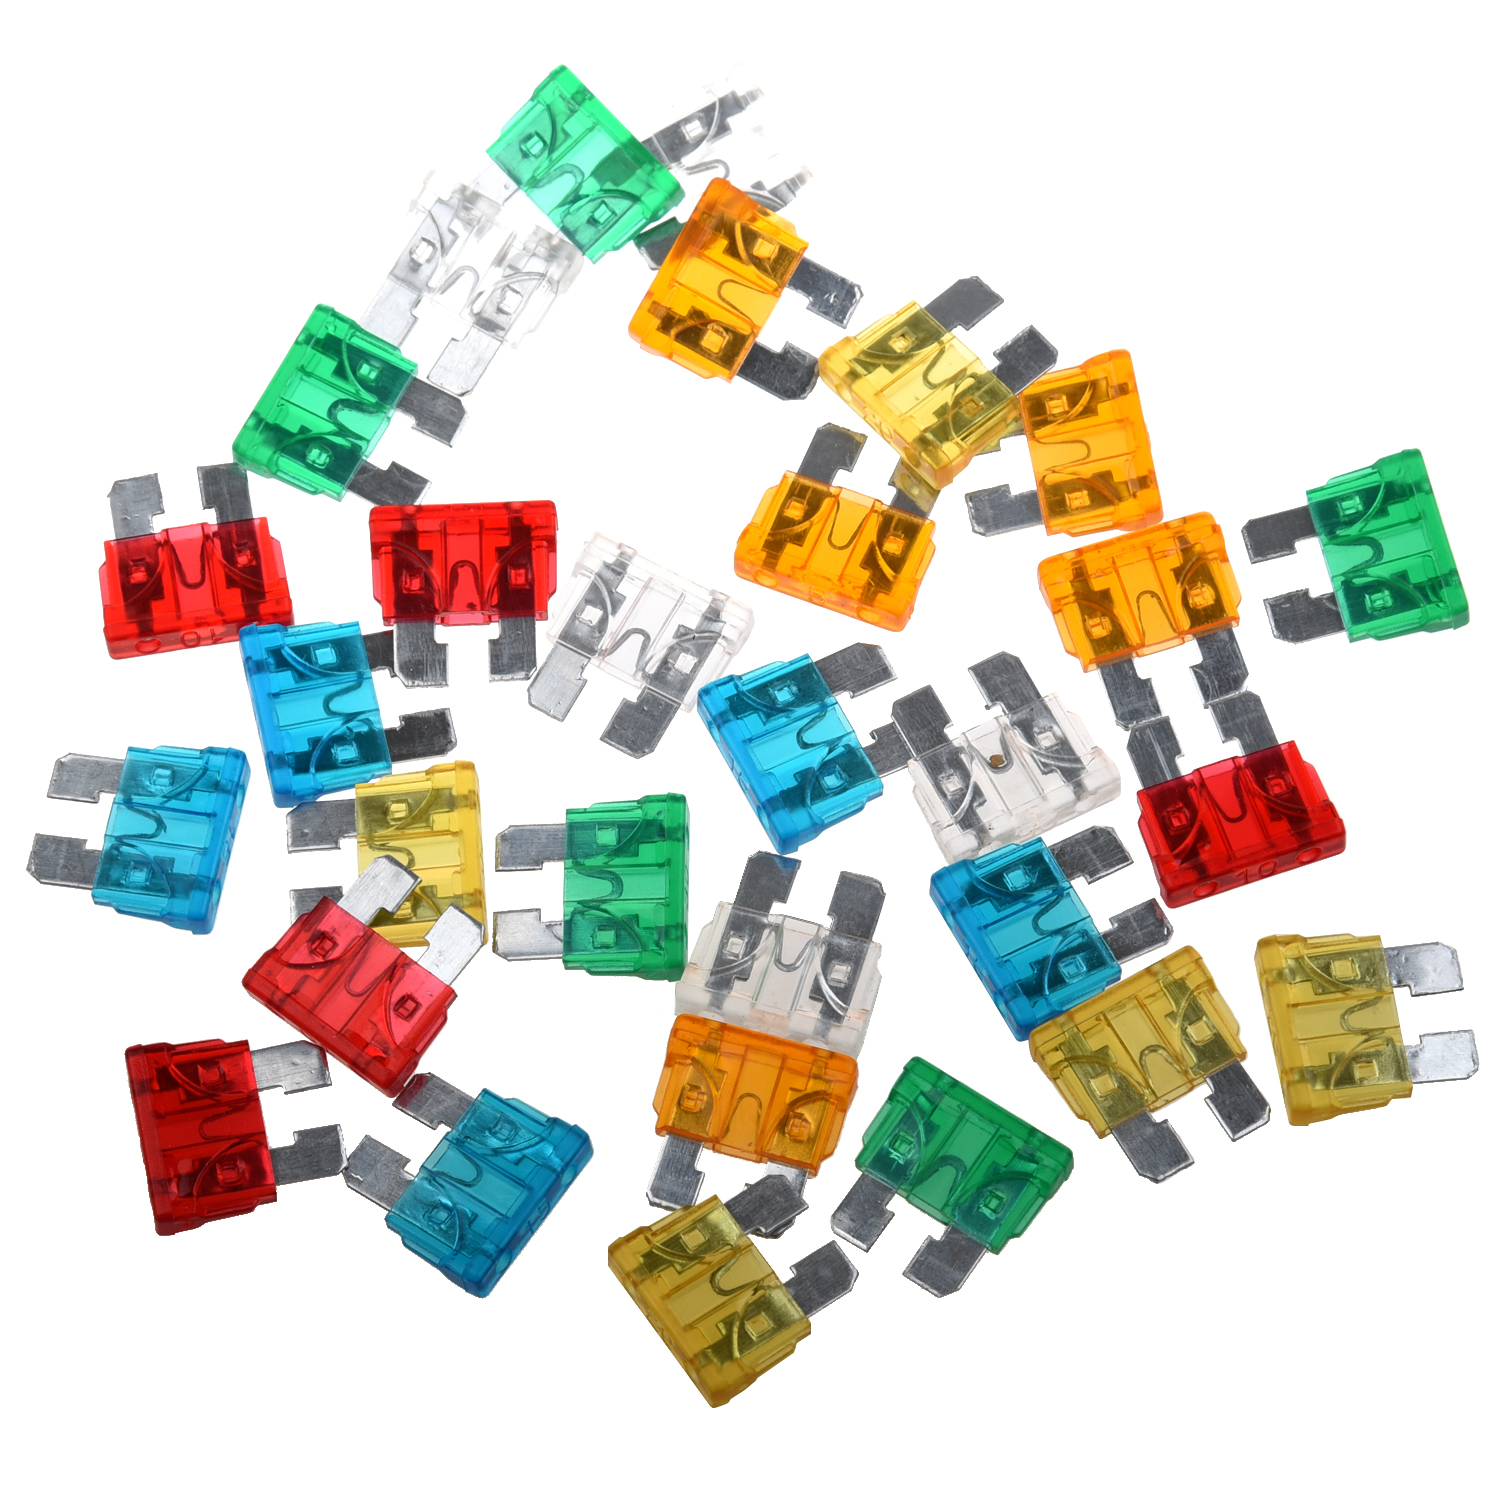 Hot Sale 30Pcs Standard Auto Blade Fuse for Car 5 10 15 20 25 30 AMP